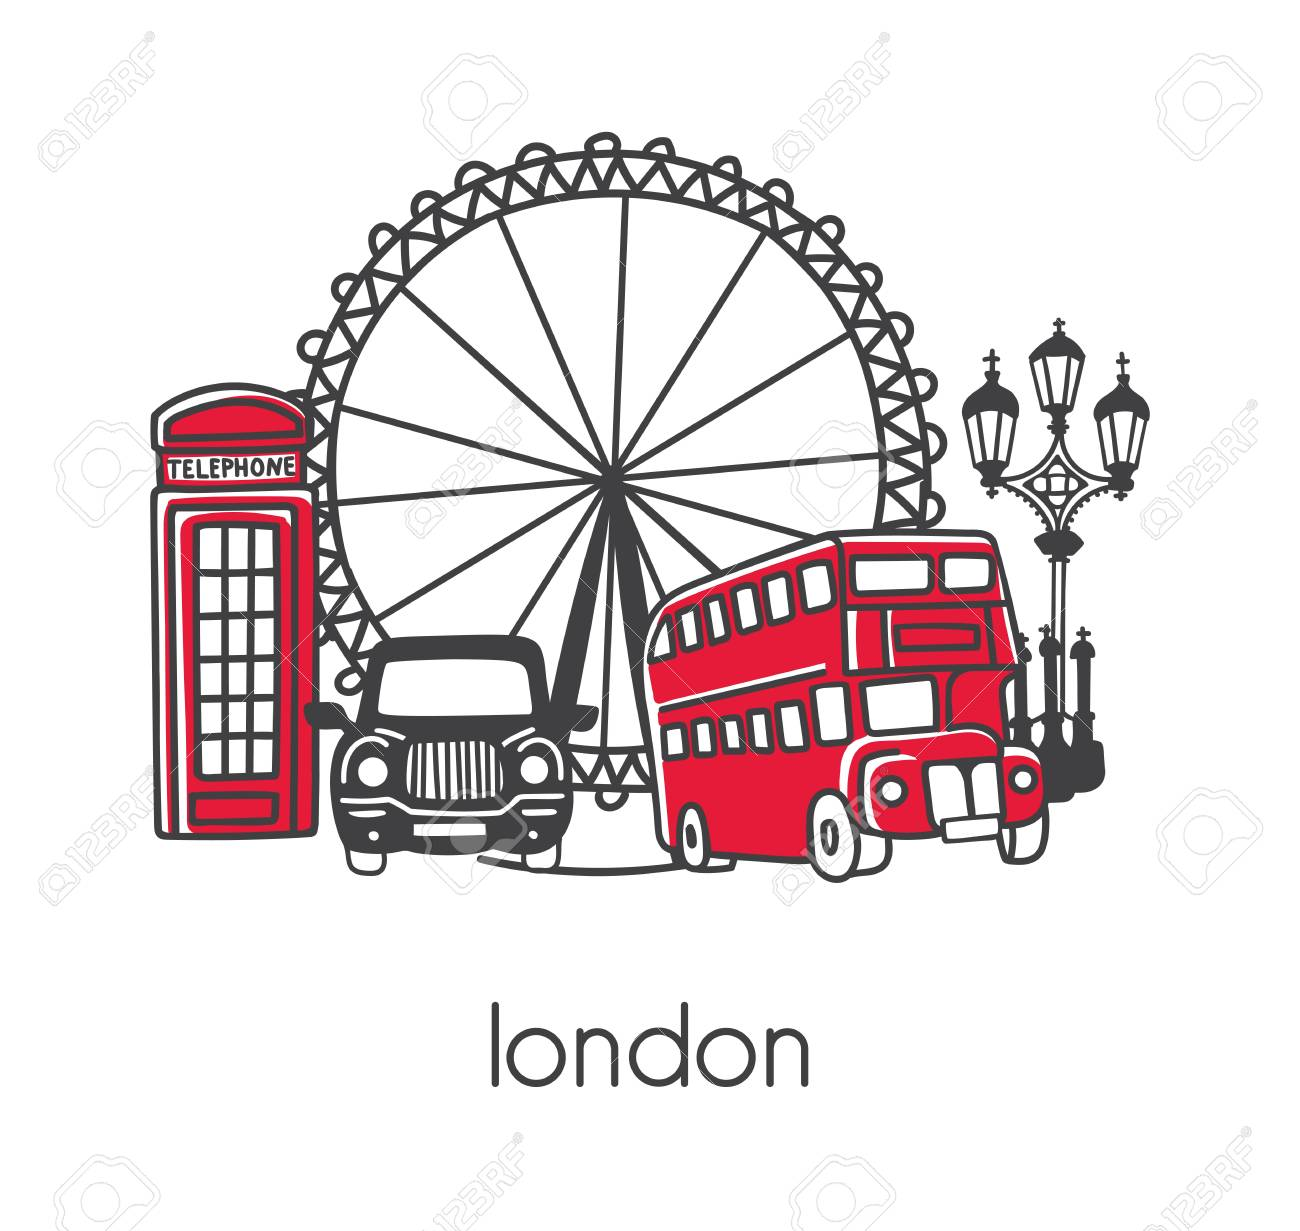 Modern vector illustration London with hand drawn doodle English symbols: double decker bus, telephone box, street lamp, cab, big wheel. Simple design with black outline isolated on white background. - 94991601